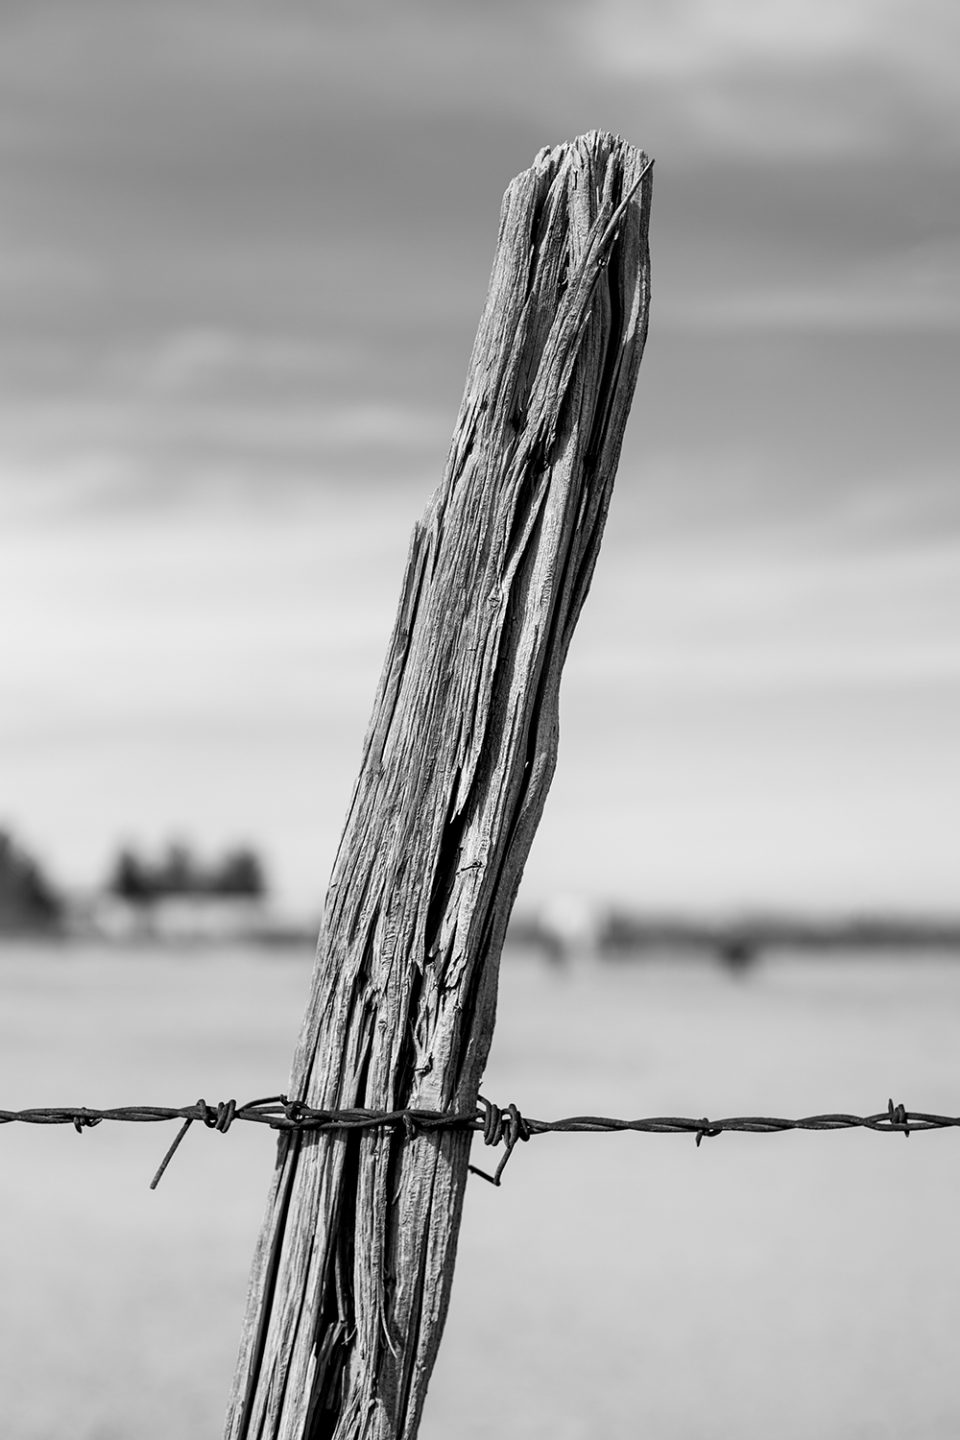 Black and white photograph of a desert fence post with rusty barbed wire.